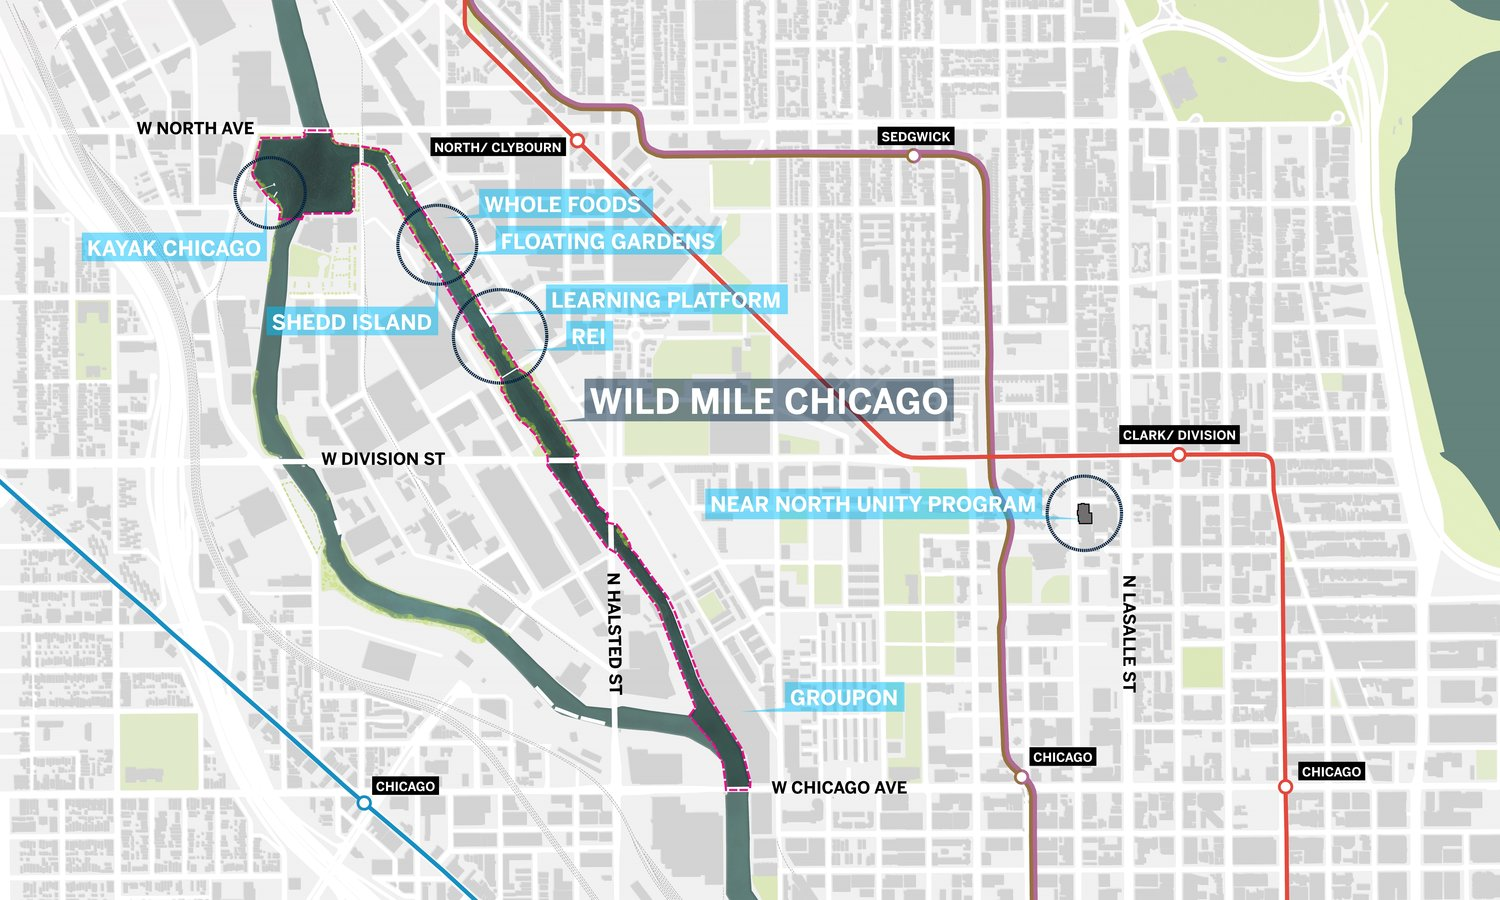 Wild Mile Chicago - Wild Mile Chicago will be a floating eco-park located on the North Branch Canal of the Chicago River, a manmade channel along the east side of Goose Island between Chicago Ave and North Ave.